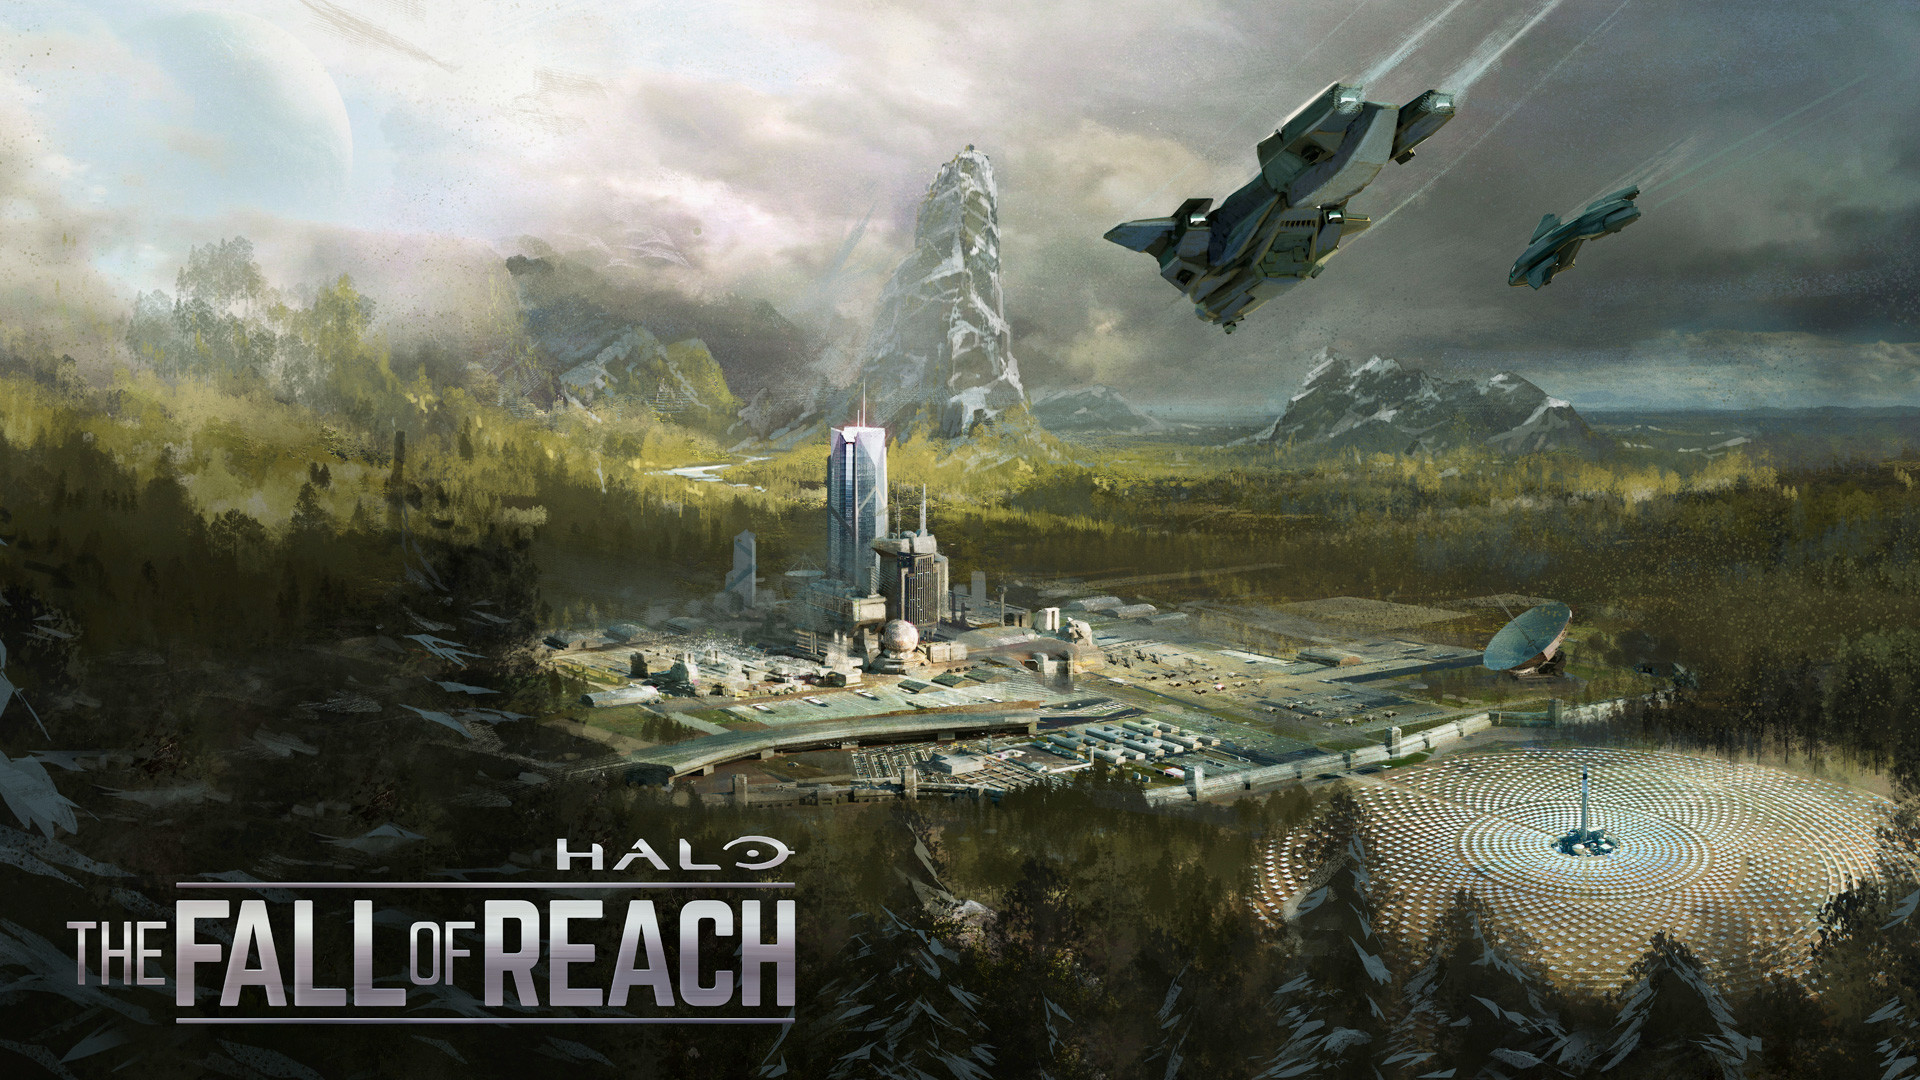 Halo: The Fall of Reach – Media Gallery